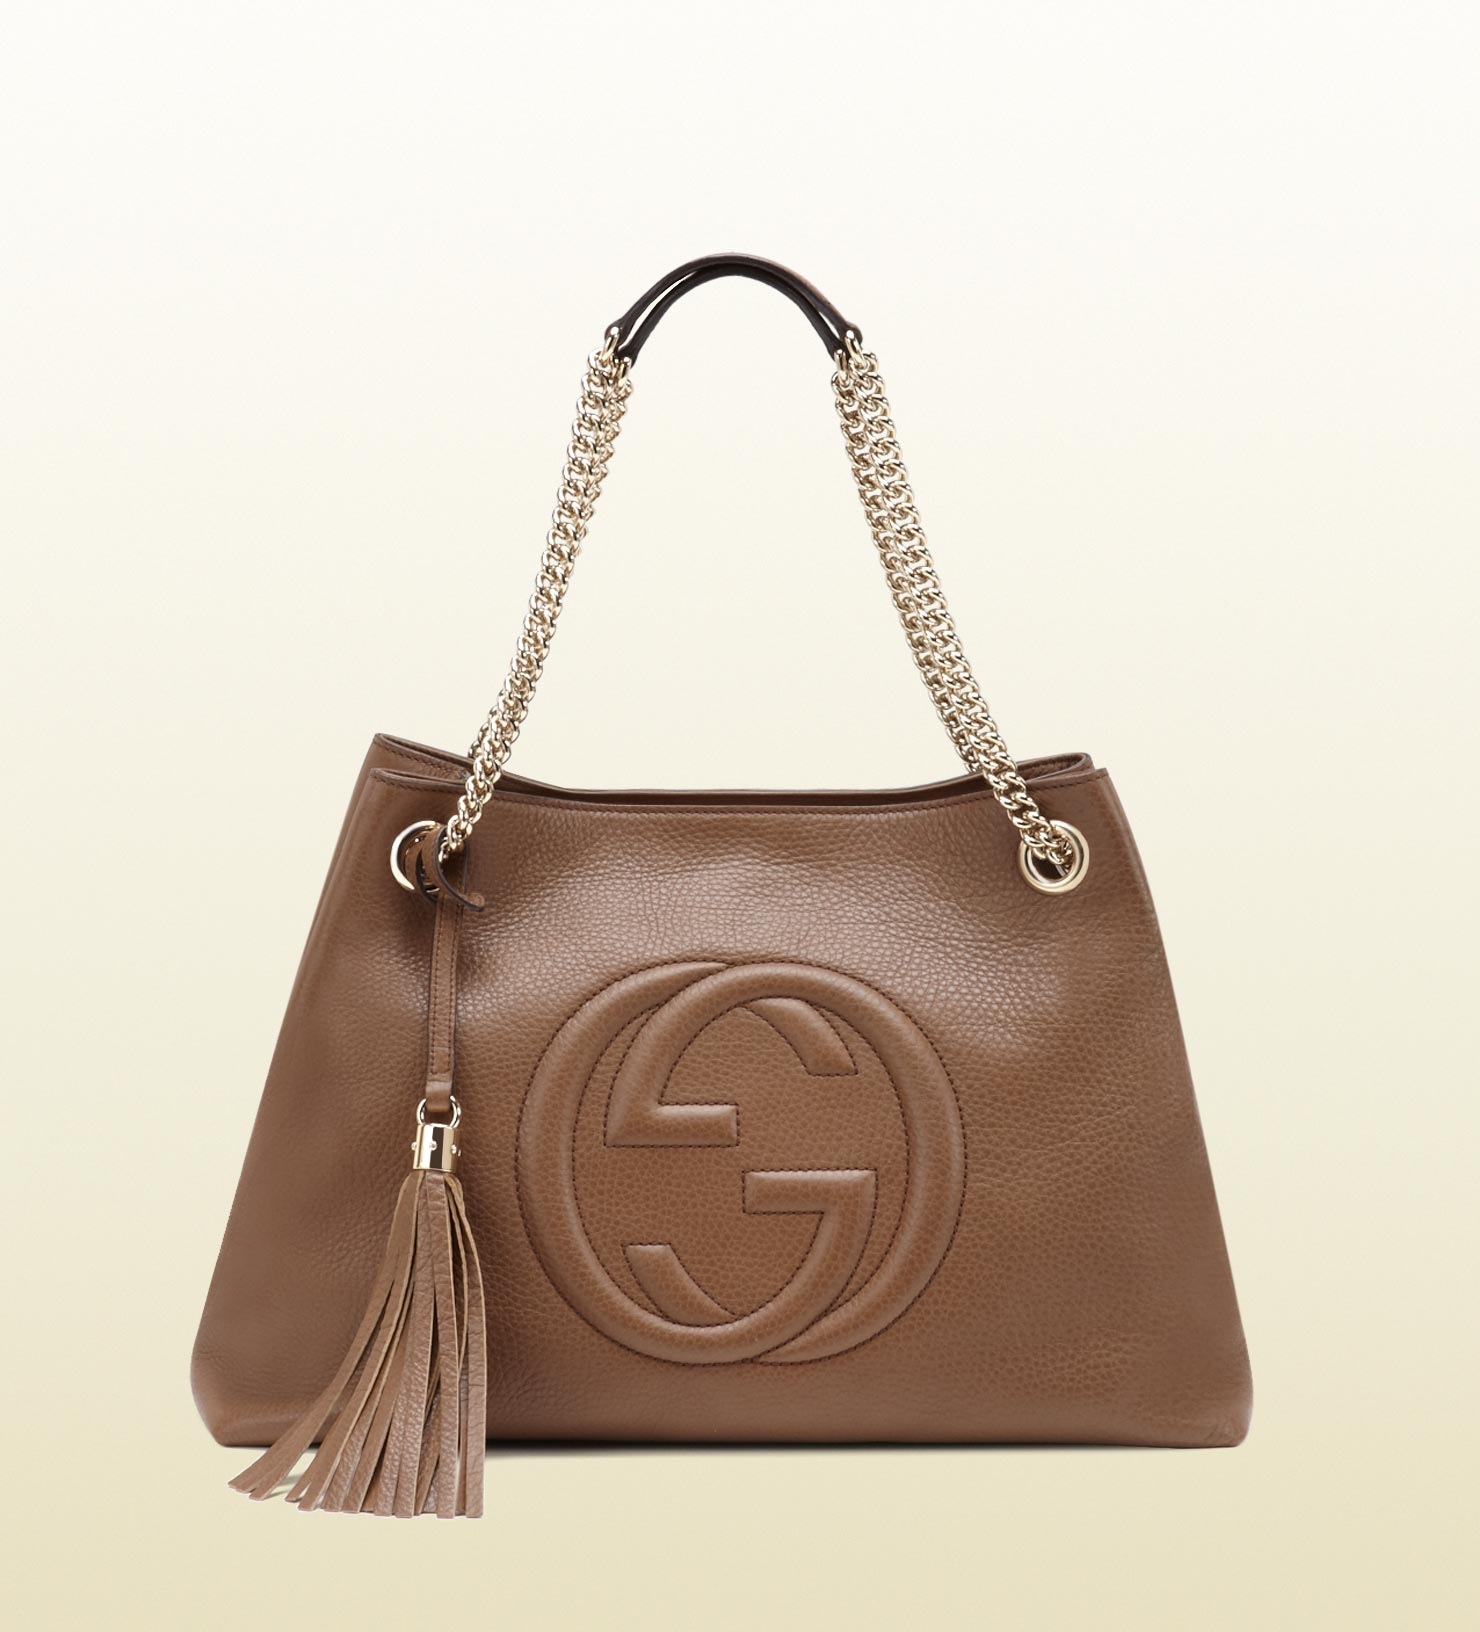 Gucci Brown Leather Purse Best Image Ccdbb